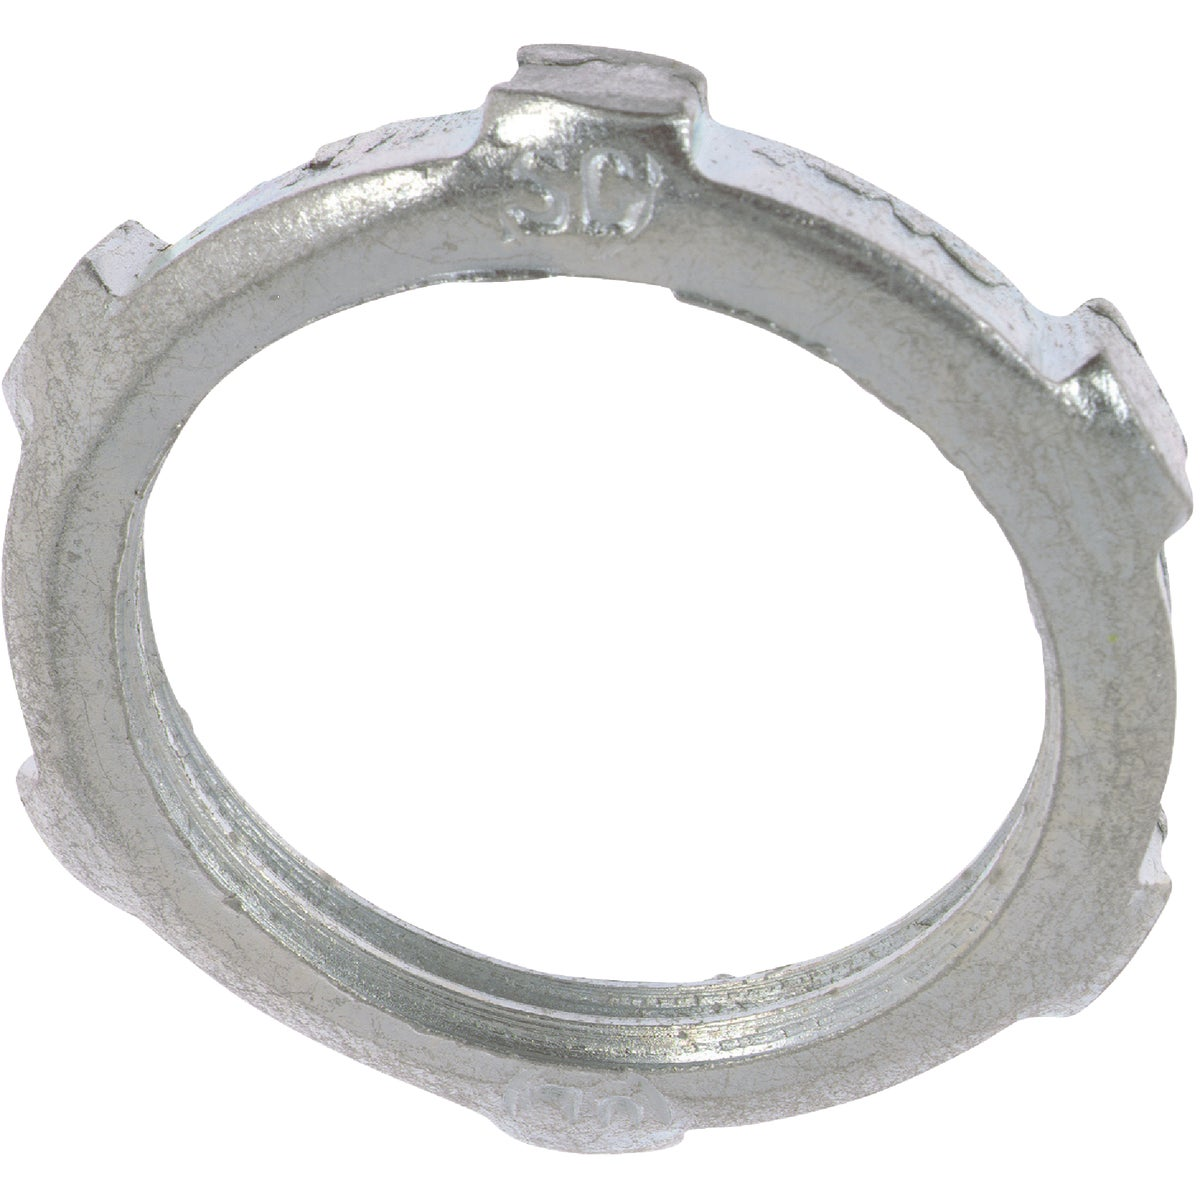 "3"" LOCKNUT - LN1081 by Thomas & Betts"